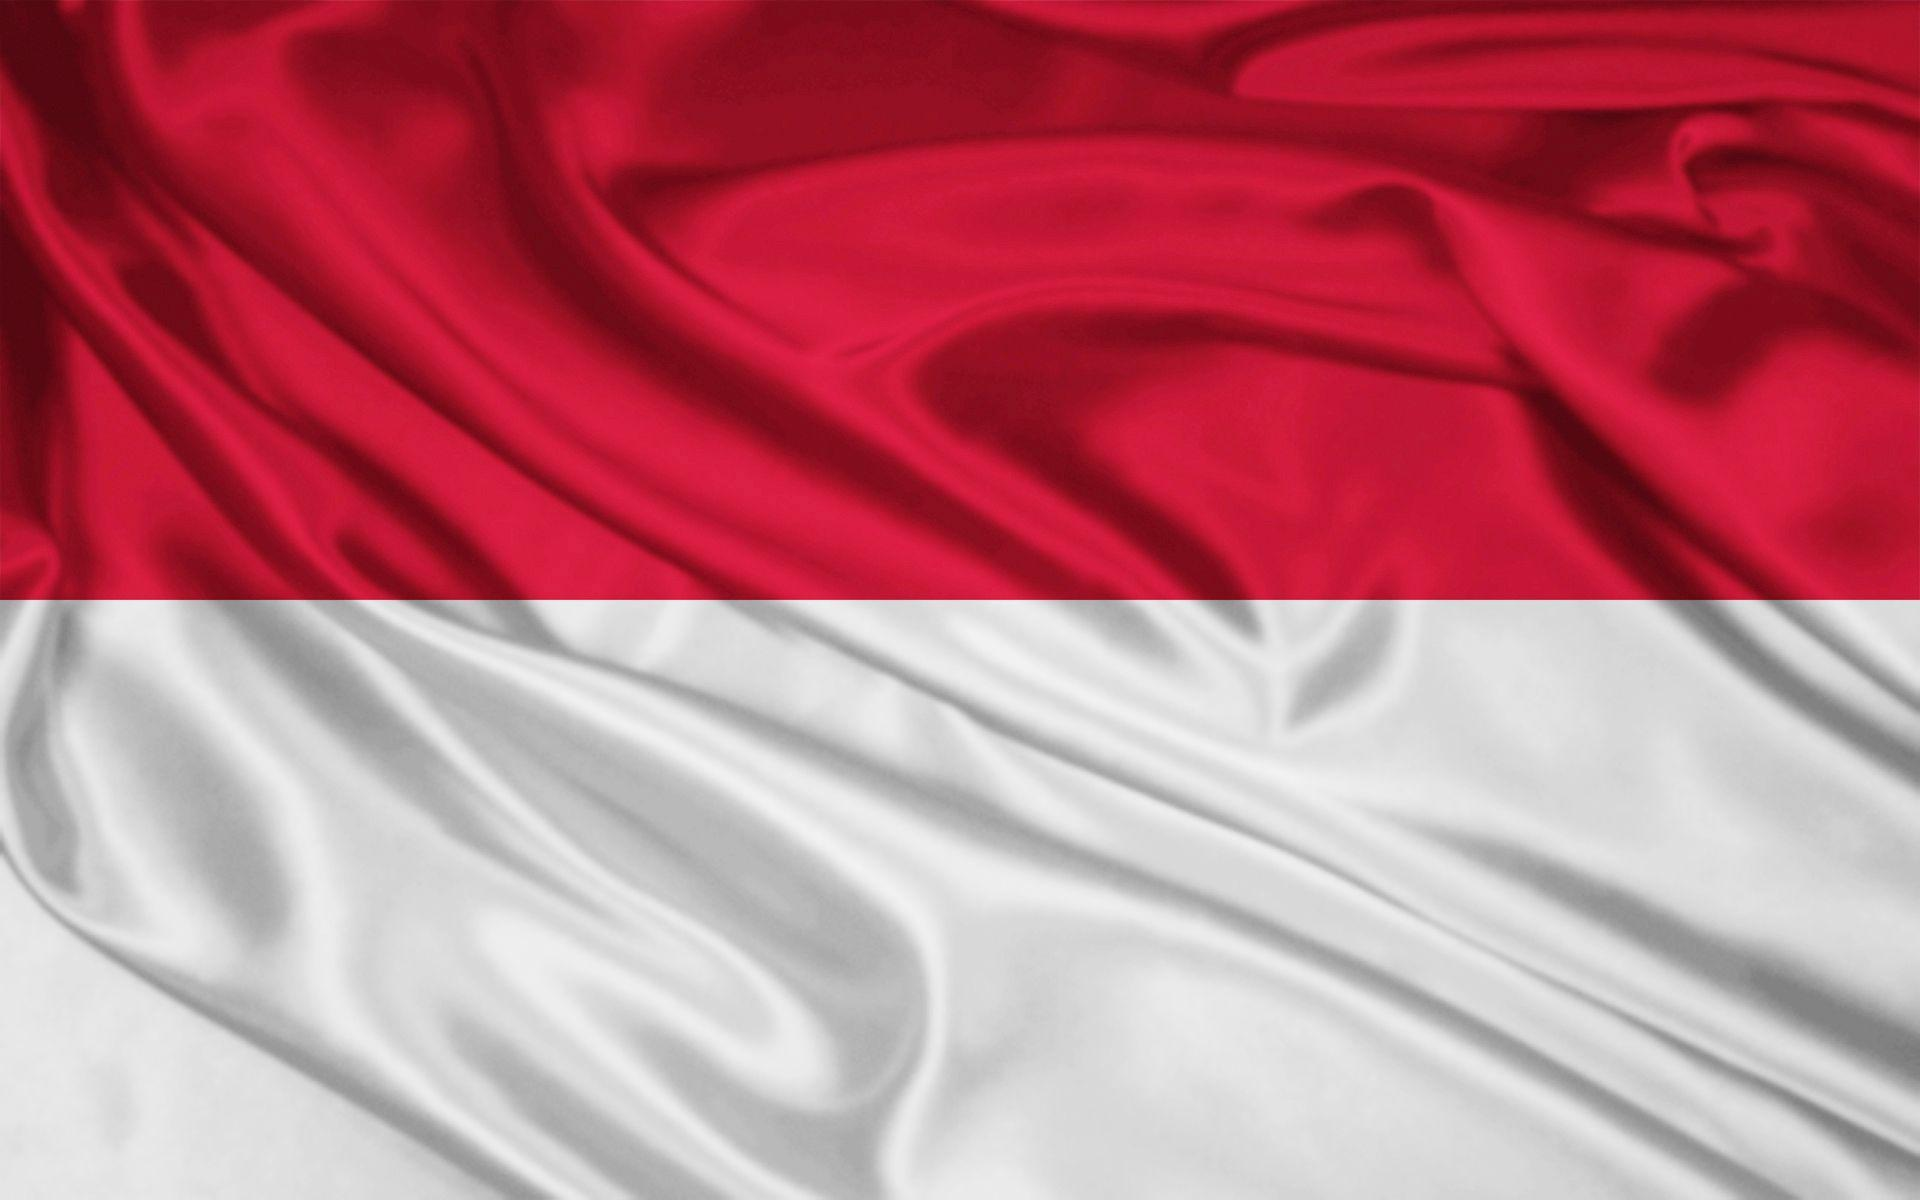 Monaco Flag and Indonesian Flag - wallpaper.